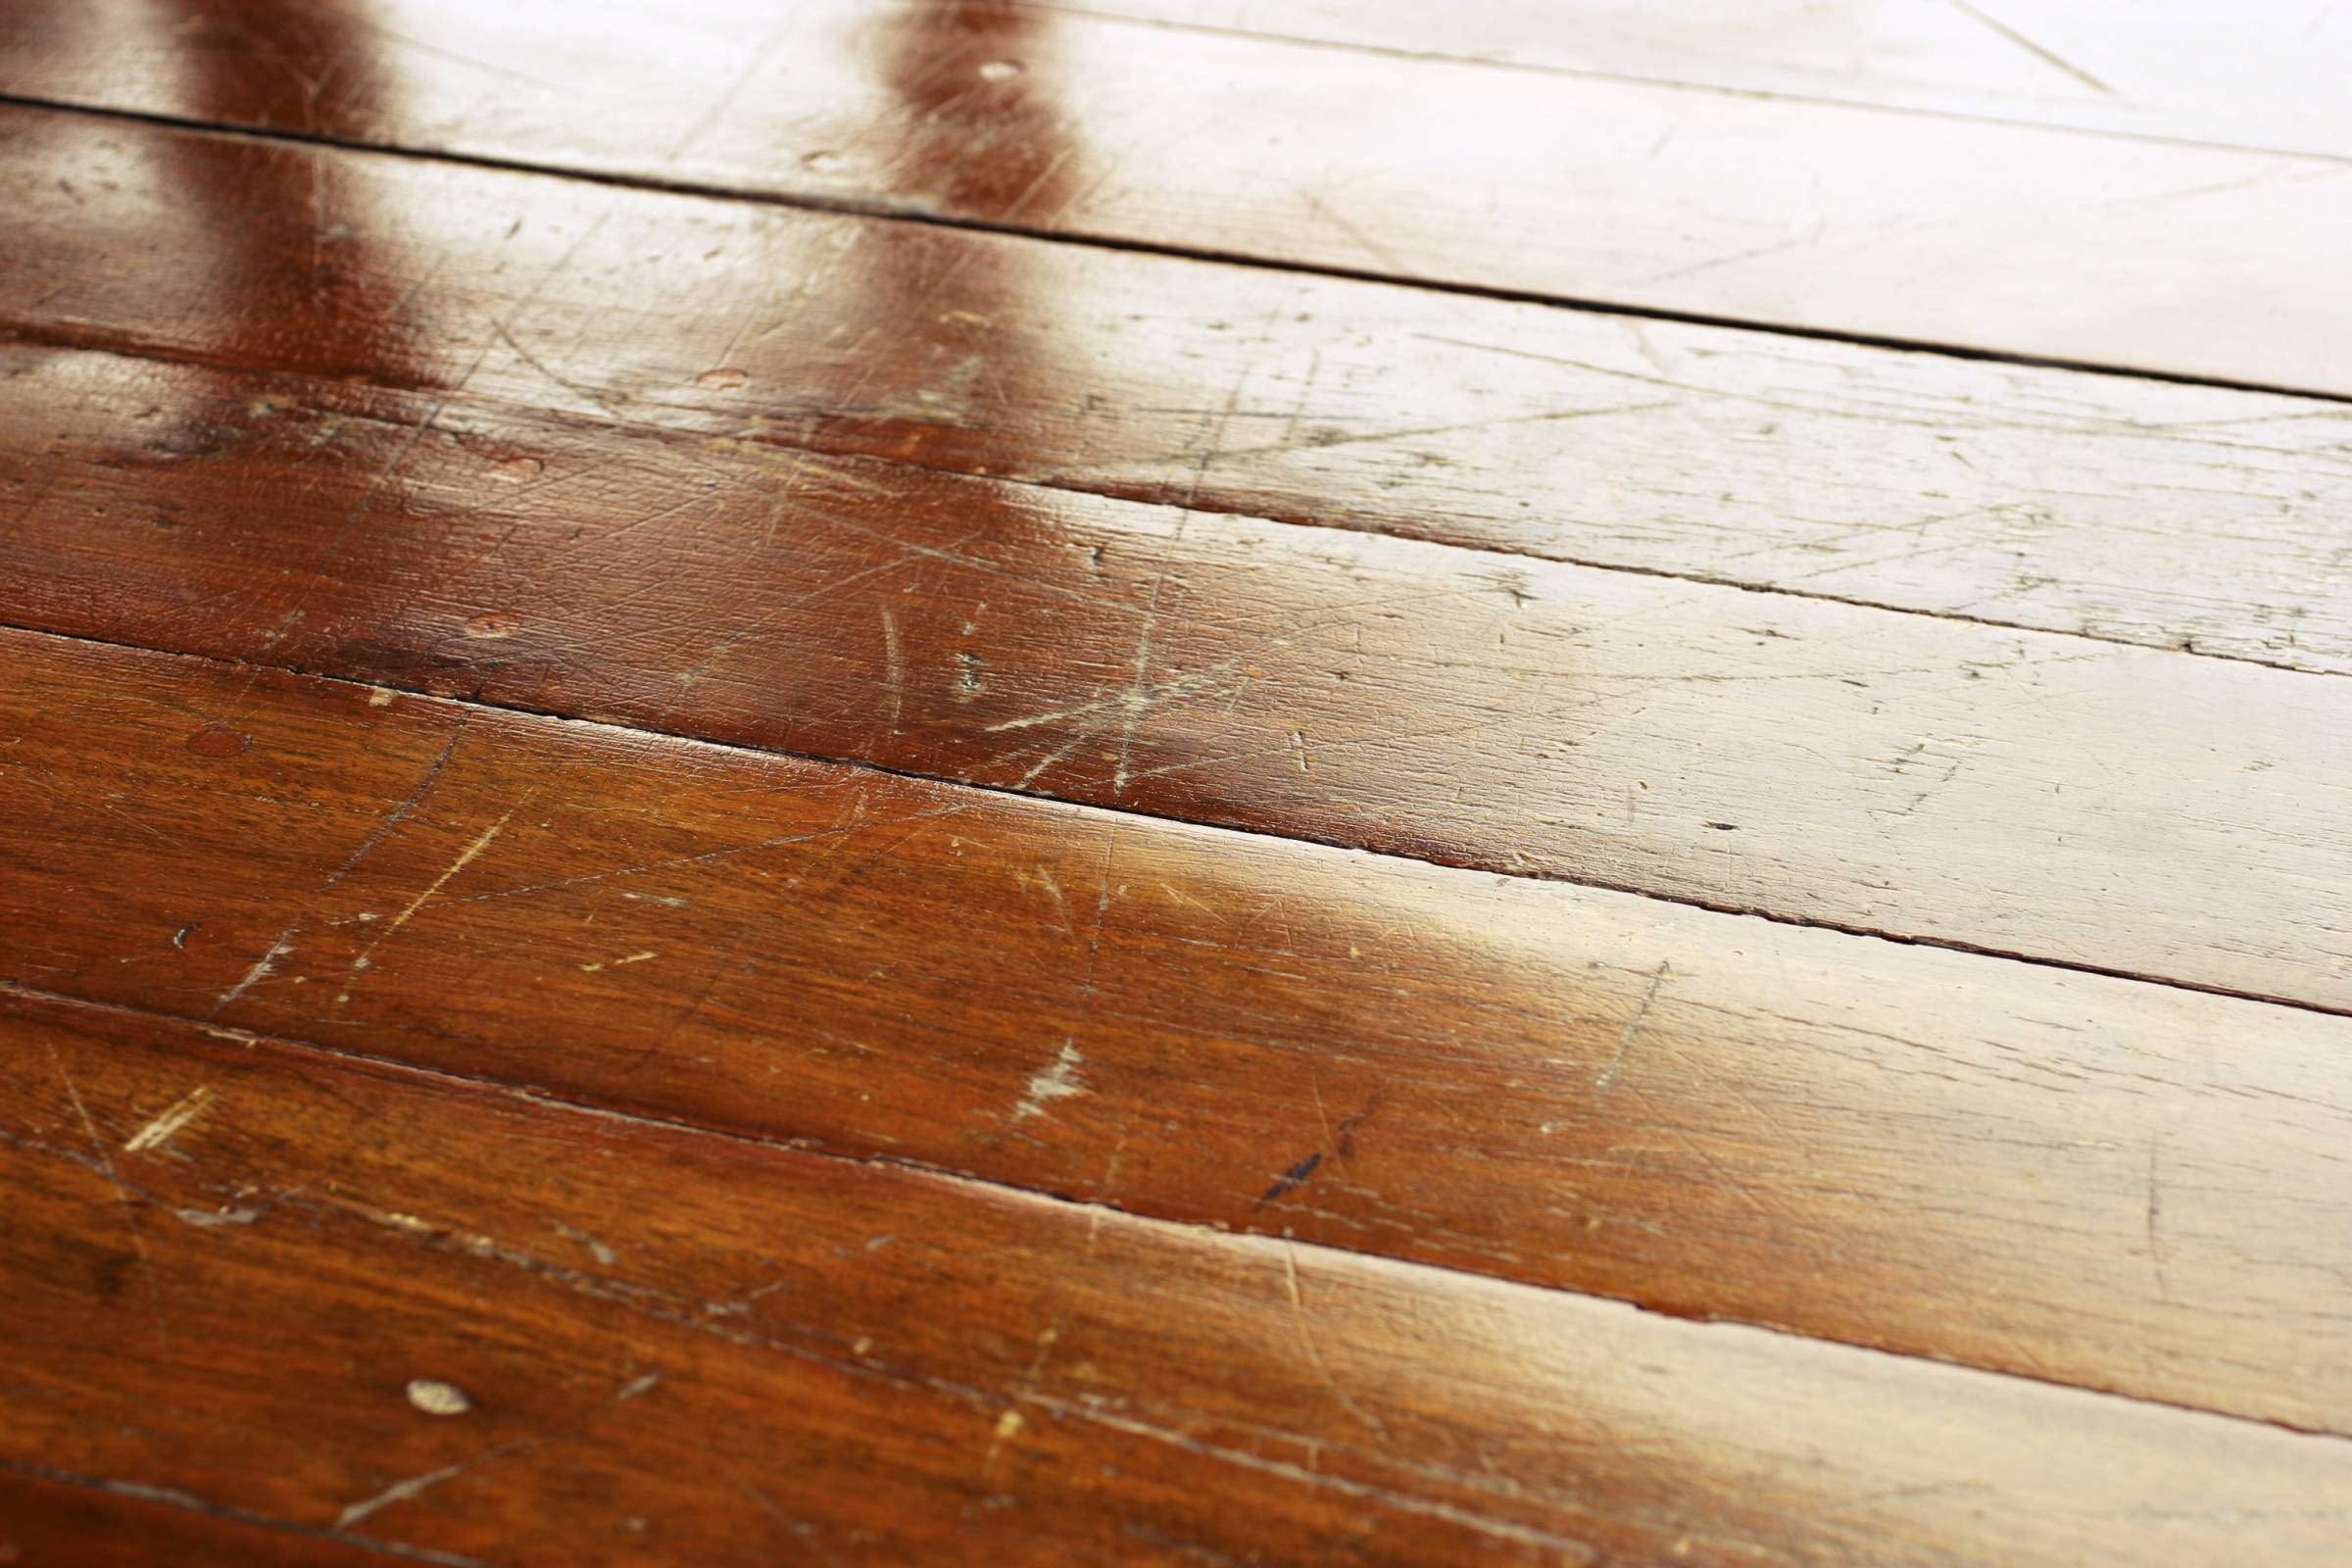 How To Fix Squeaky Floors And Repair